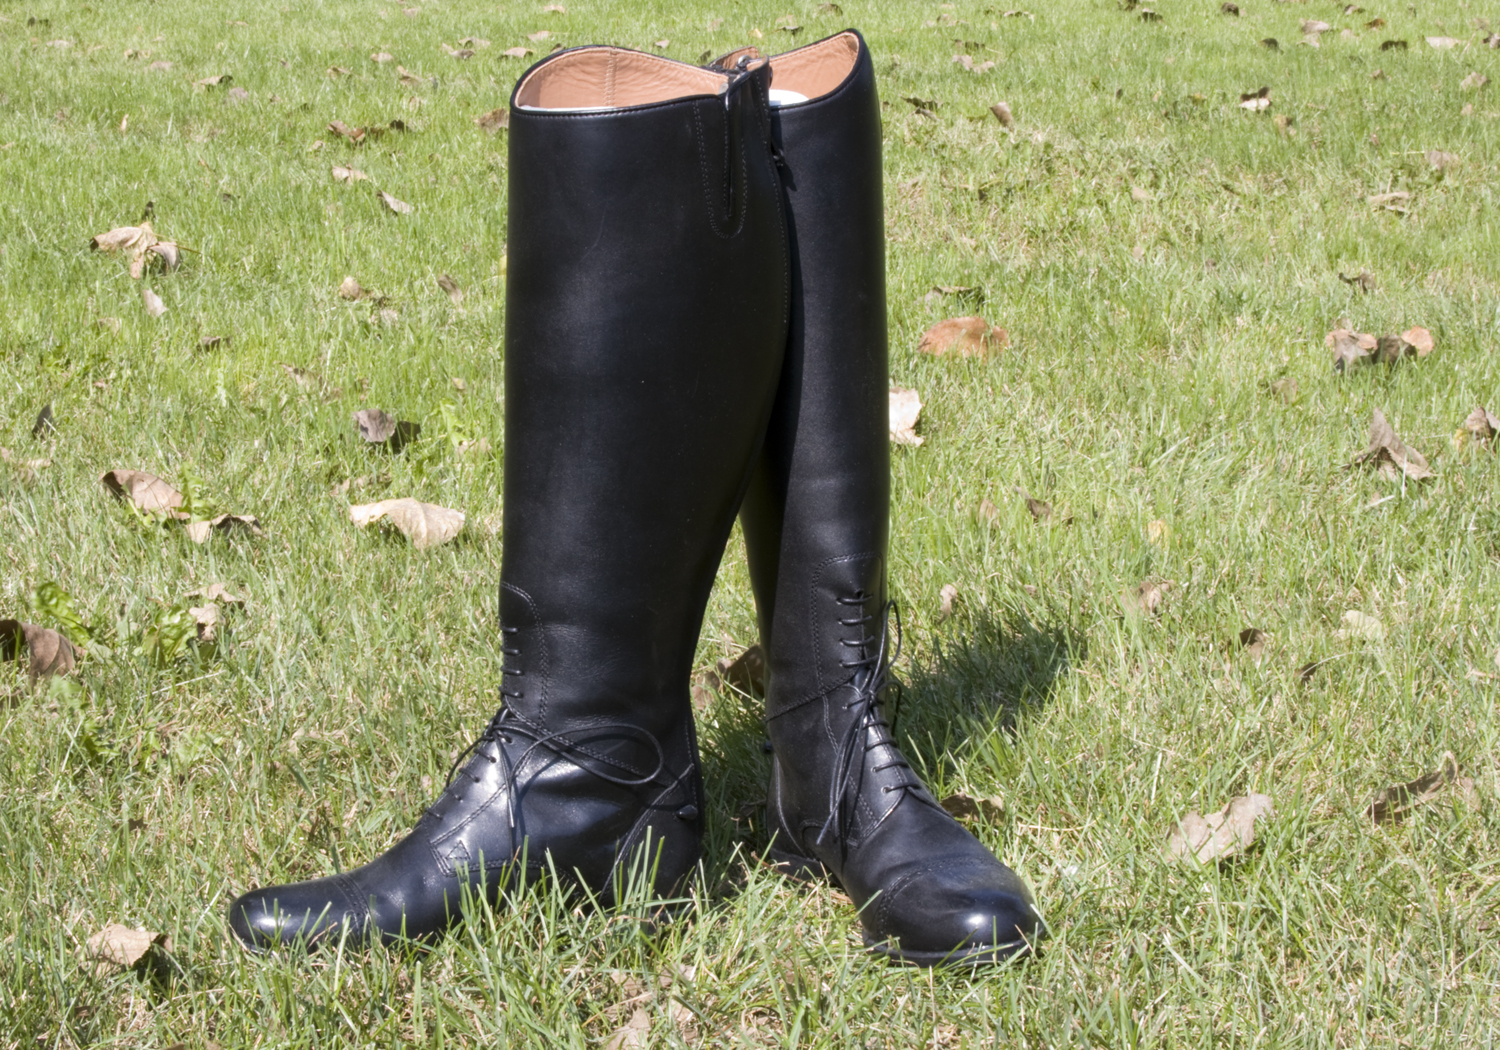 ecf6a2f036e4 Riding boot - Wikipedia